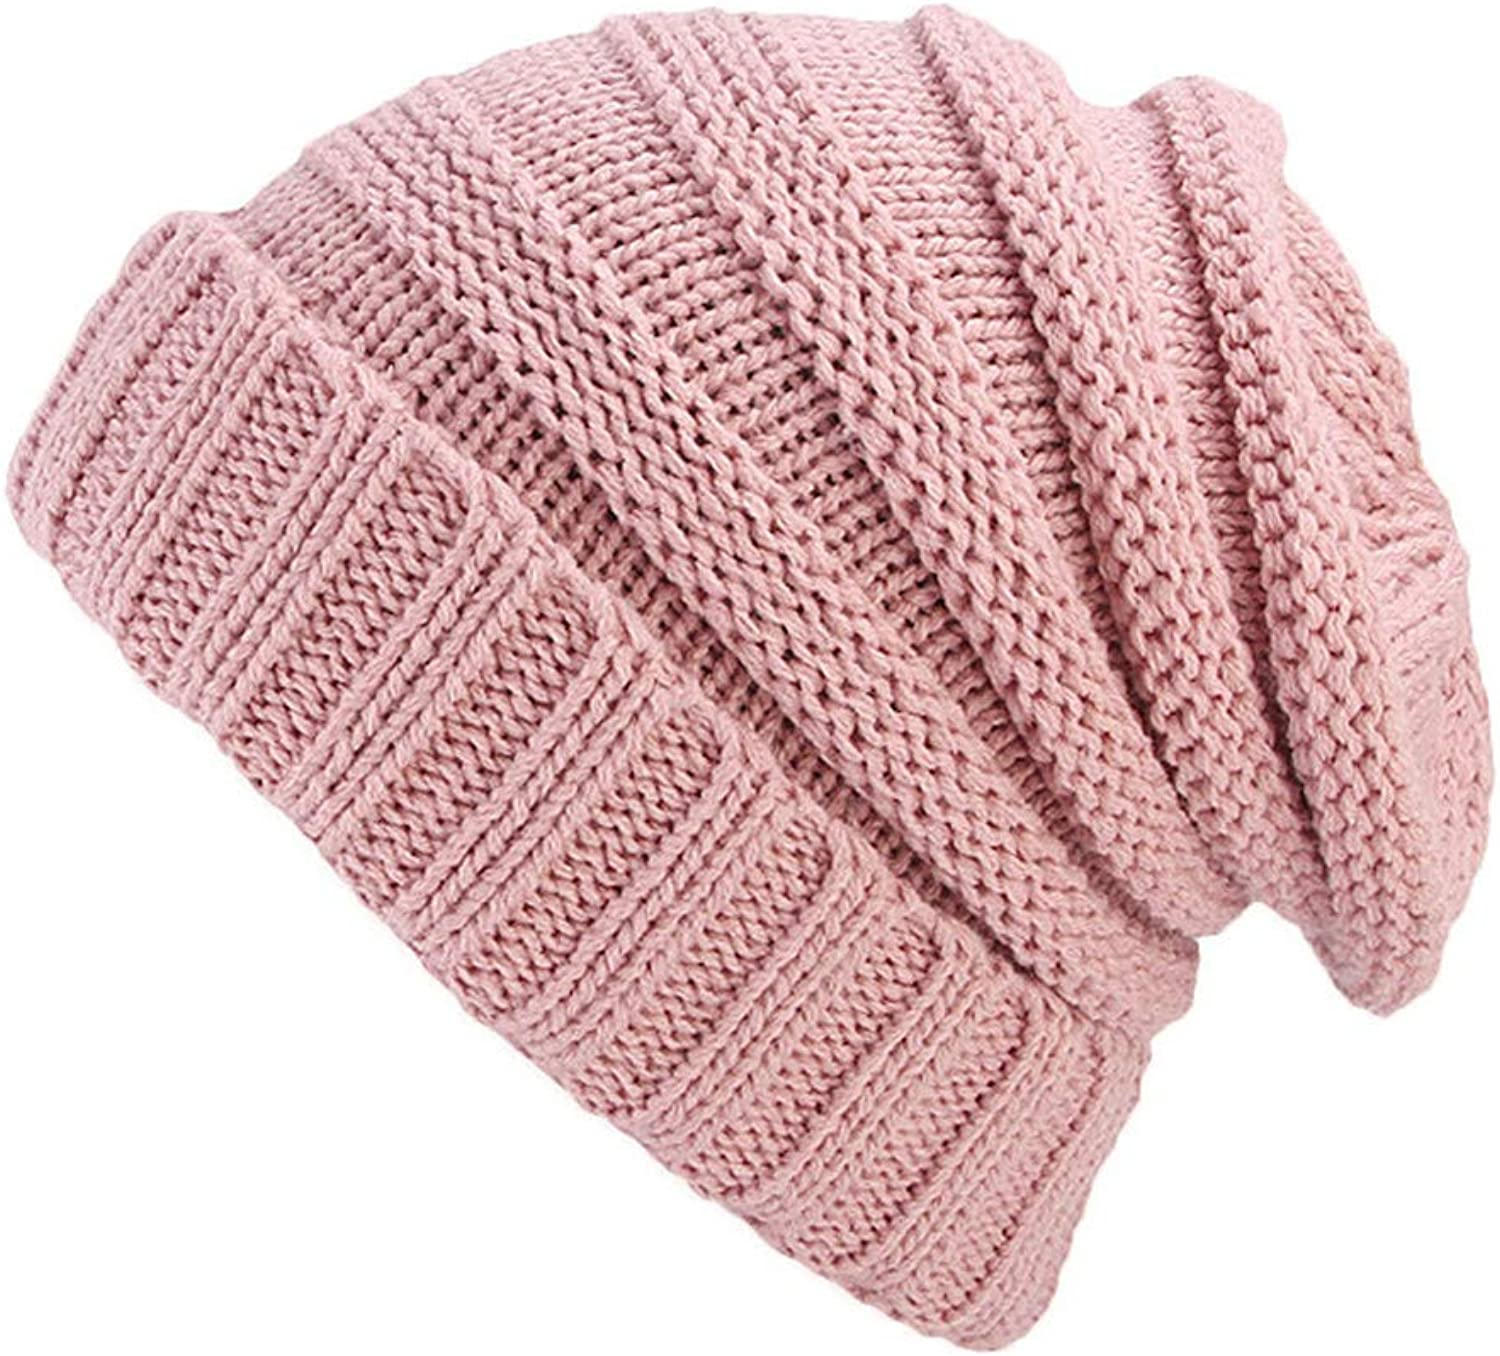 Qianmome Messy Bun Ponytail Hats Beanies Skullies Ribbed Knitted Warm Bone Ski Cap Women Girl Winter